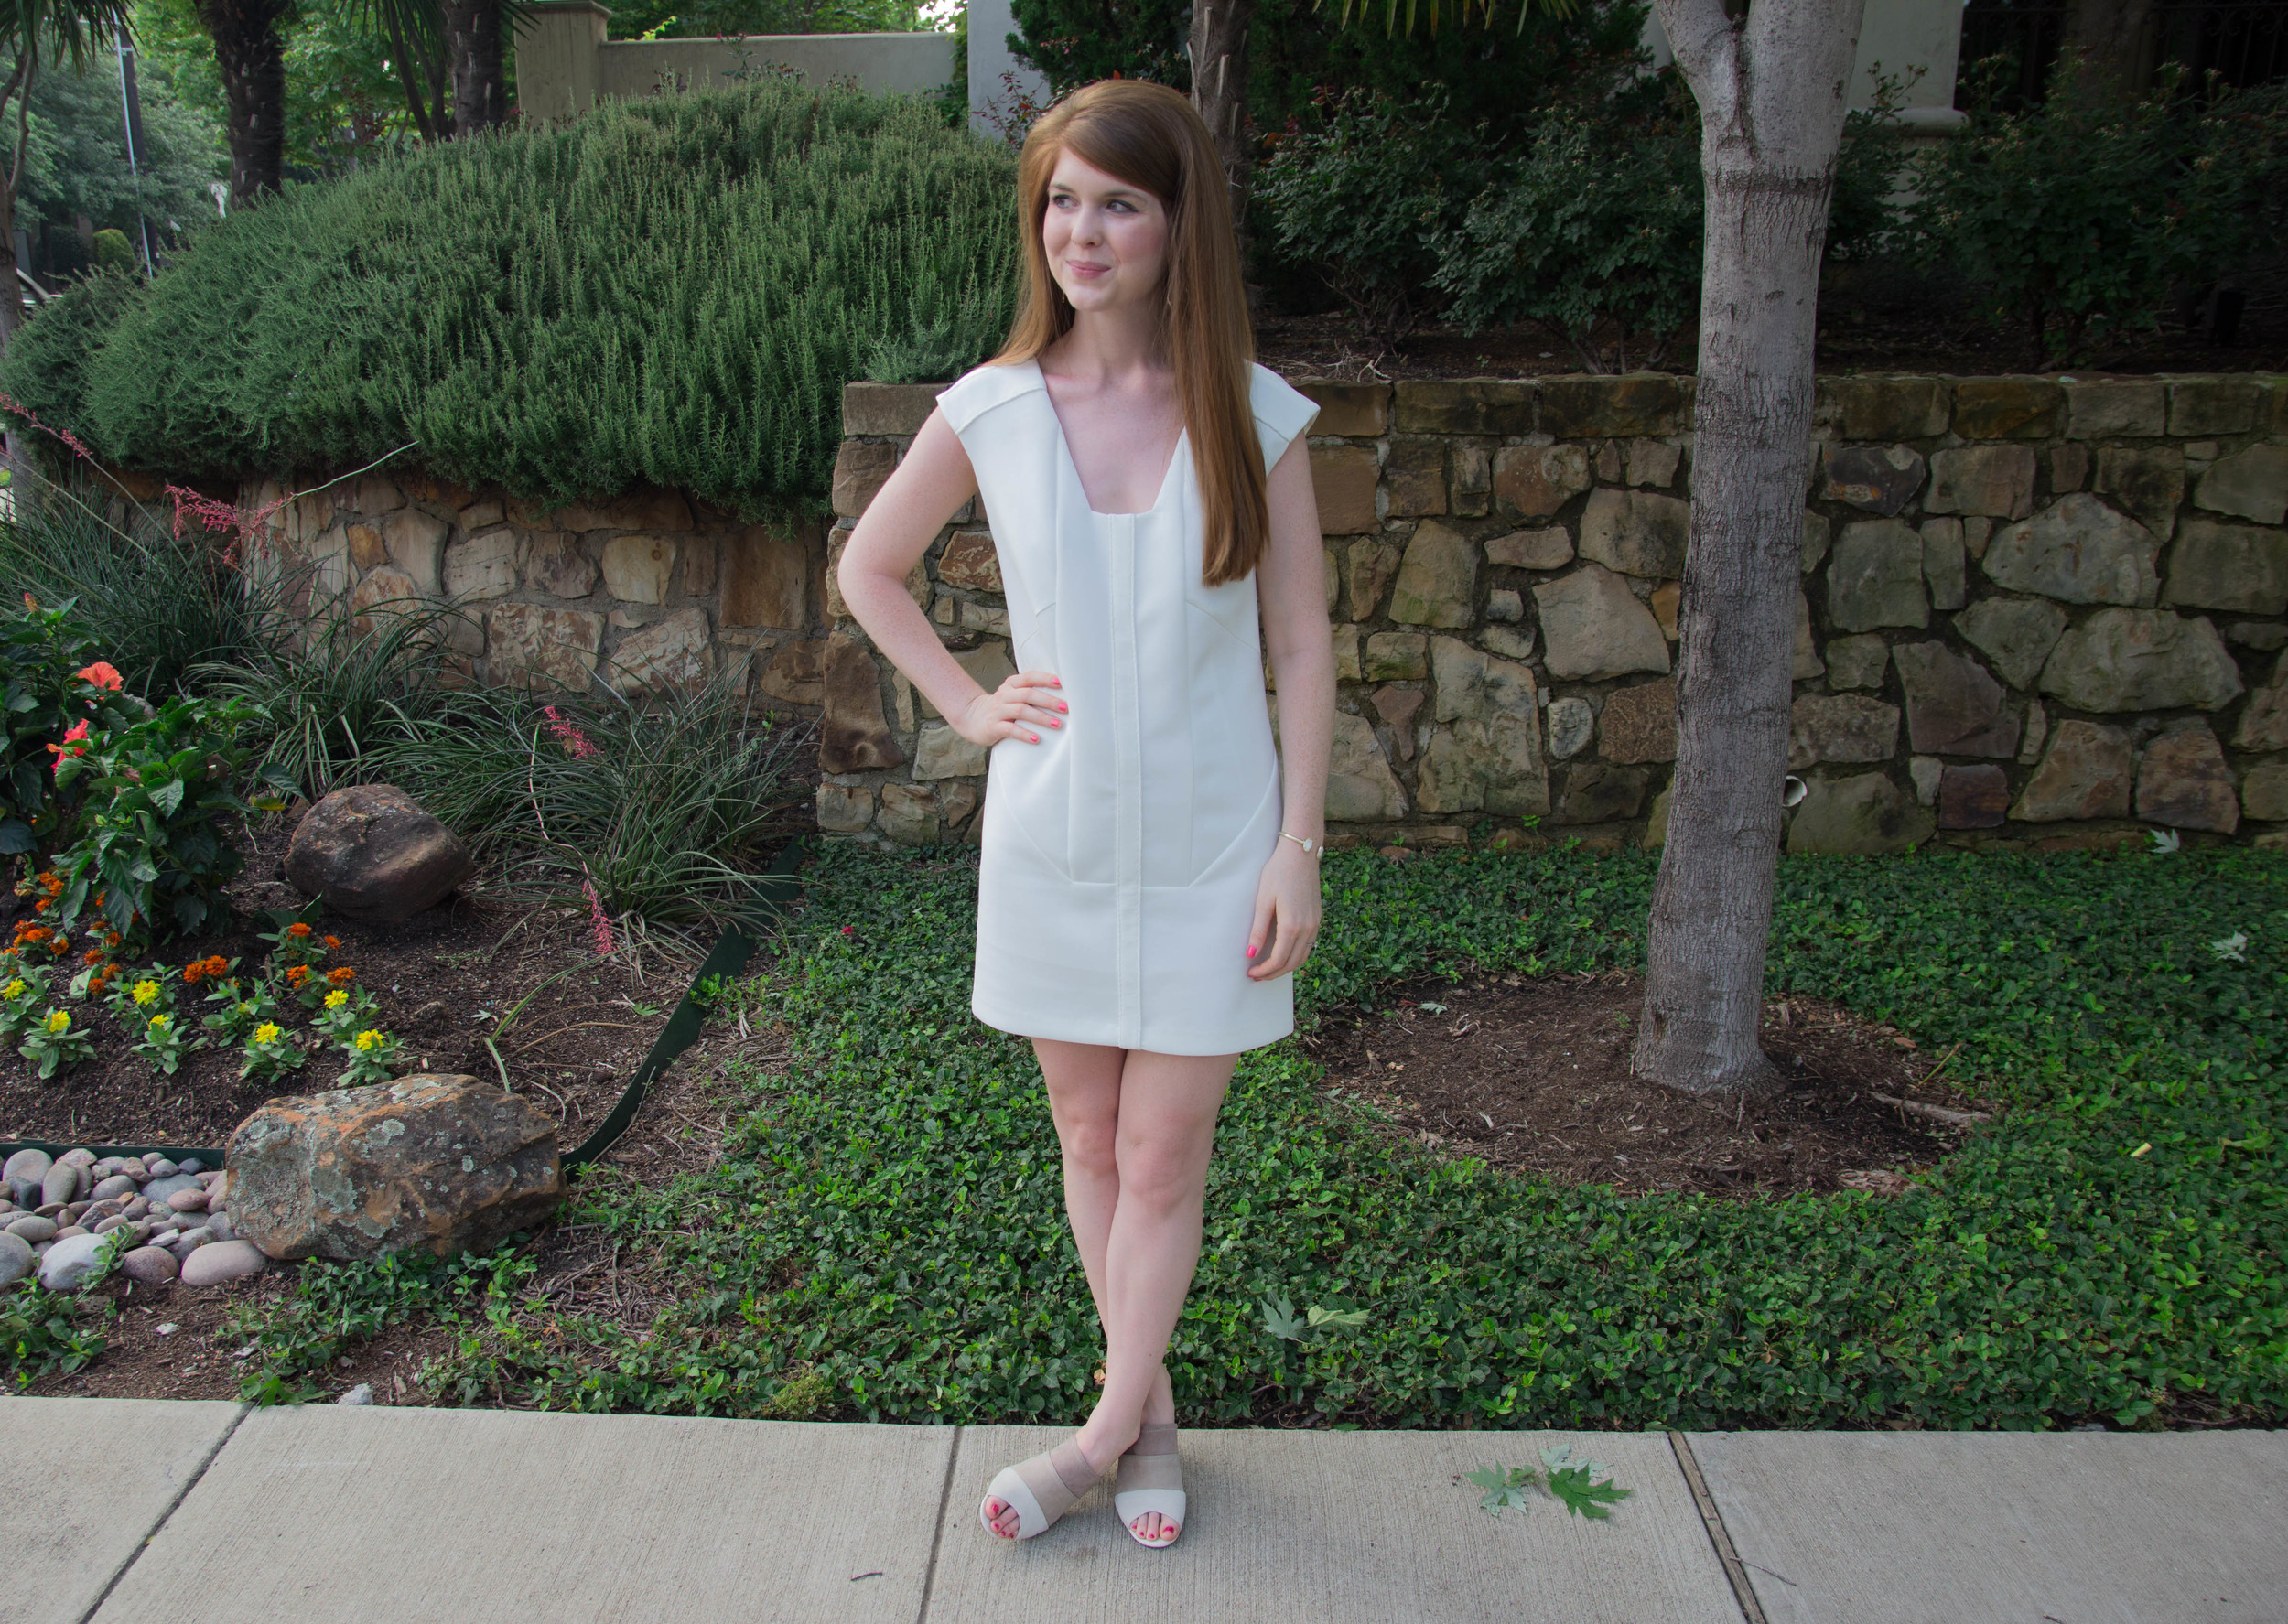 cultro dumbo white dress, scuba dress, how to wear white when you're pale, hush puppies suede slides